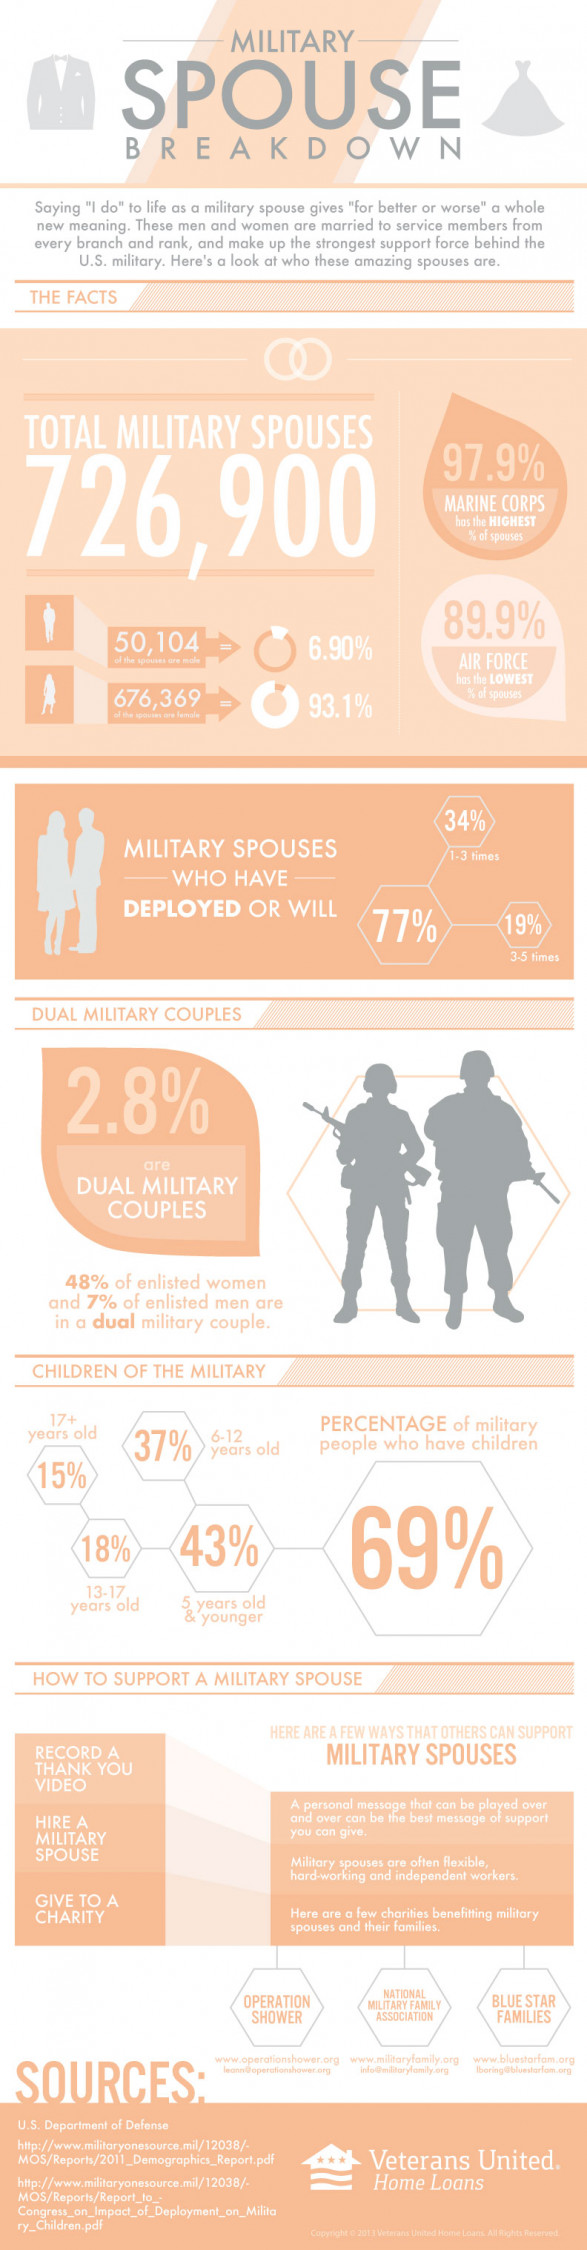 Military Marriage and Divorce (INFOGRAPHIC) | Bright Ideas